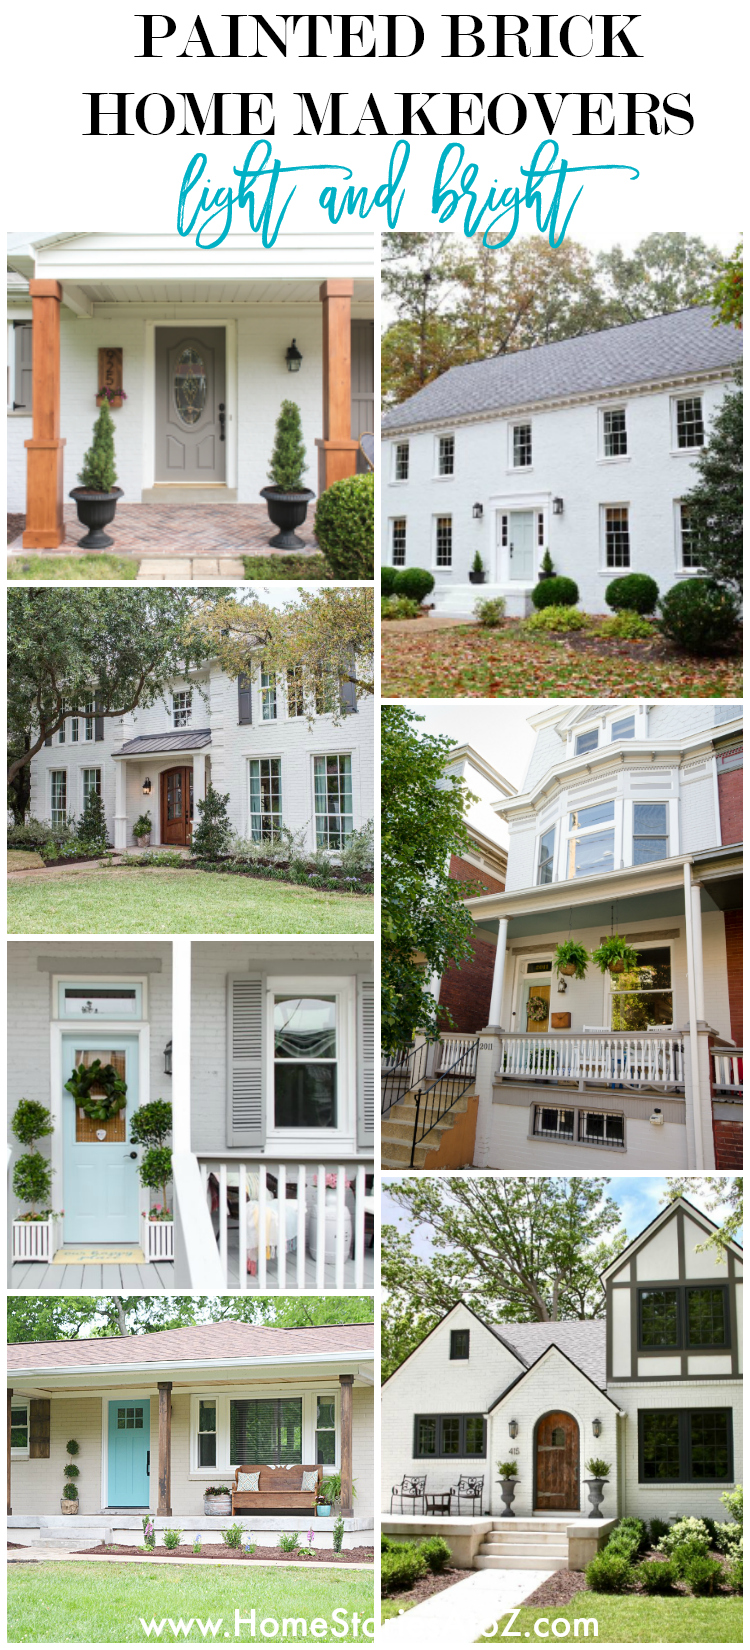 Painted Brick Home Exterior Makeover Before and After Ideas on Brick Painting Ideas  id=48965